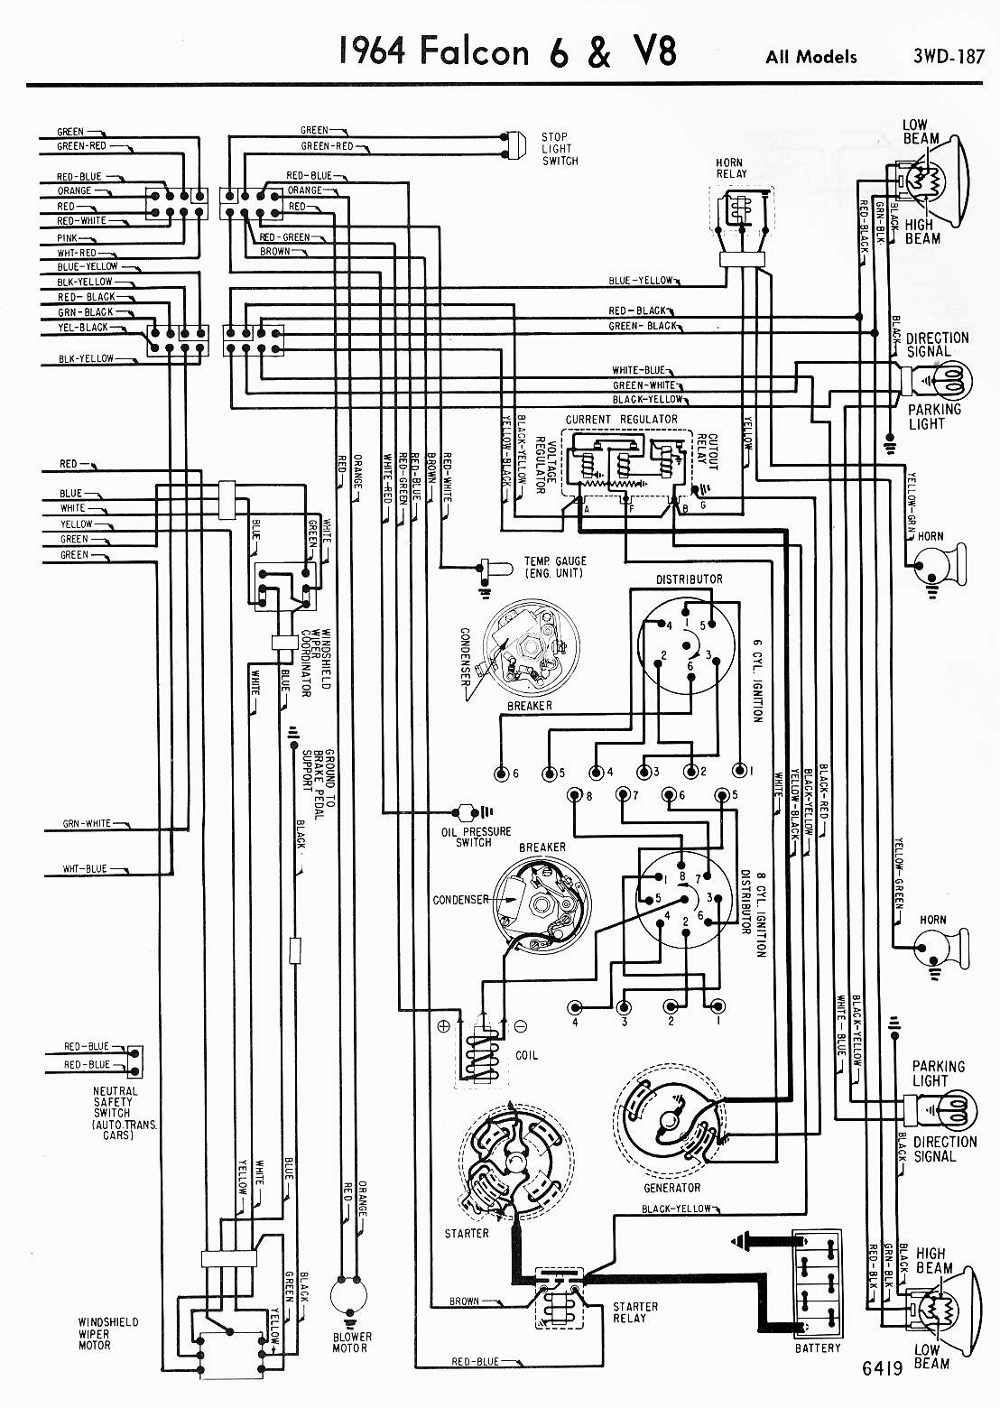 diagram] 1965 ford falcon wiring diagram full version hd quality wiring  diagram - paindiagram.vinciconmareblu.it  diagram database